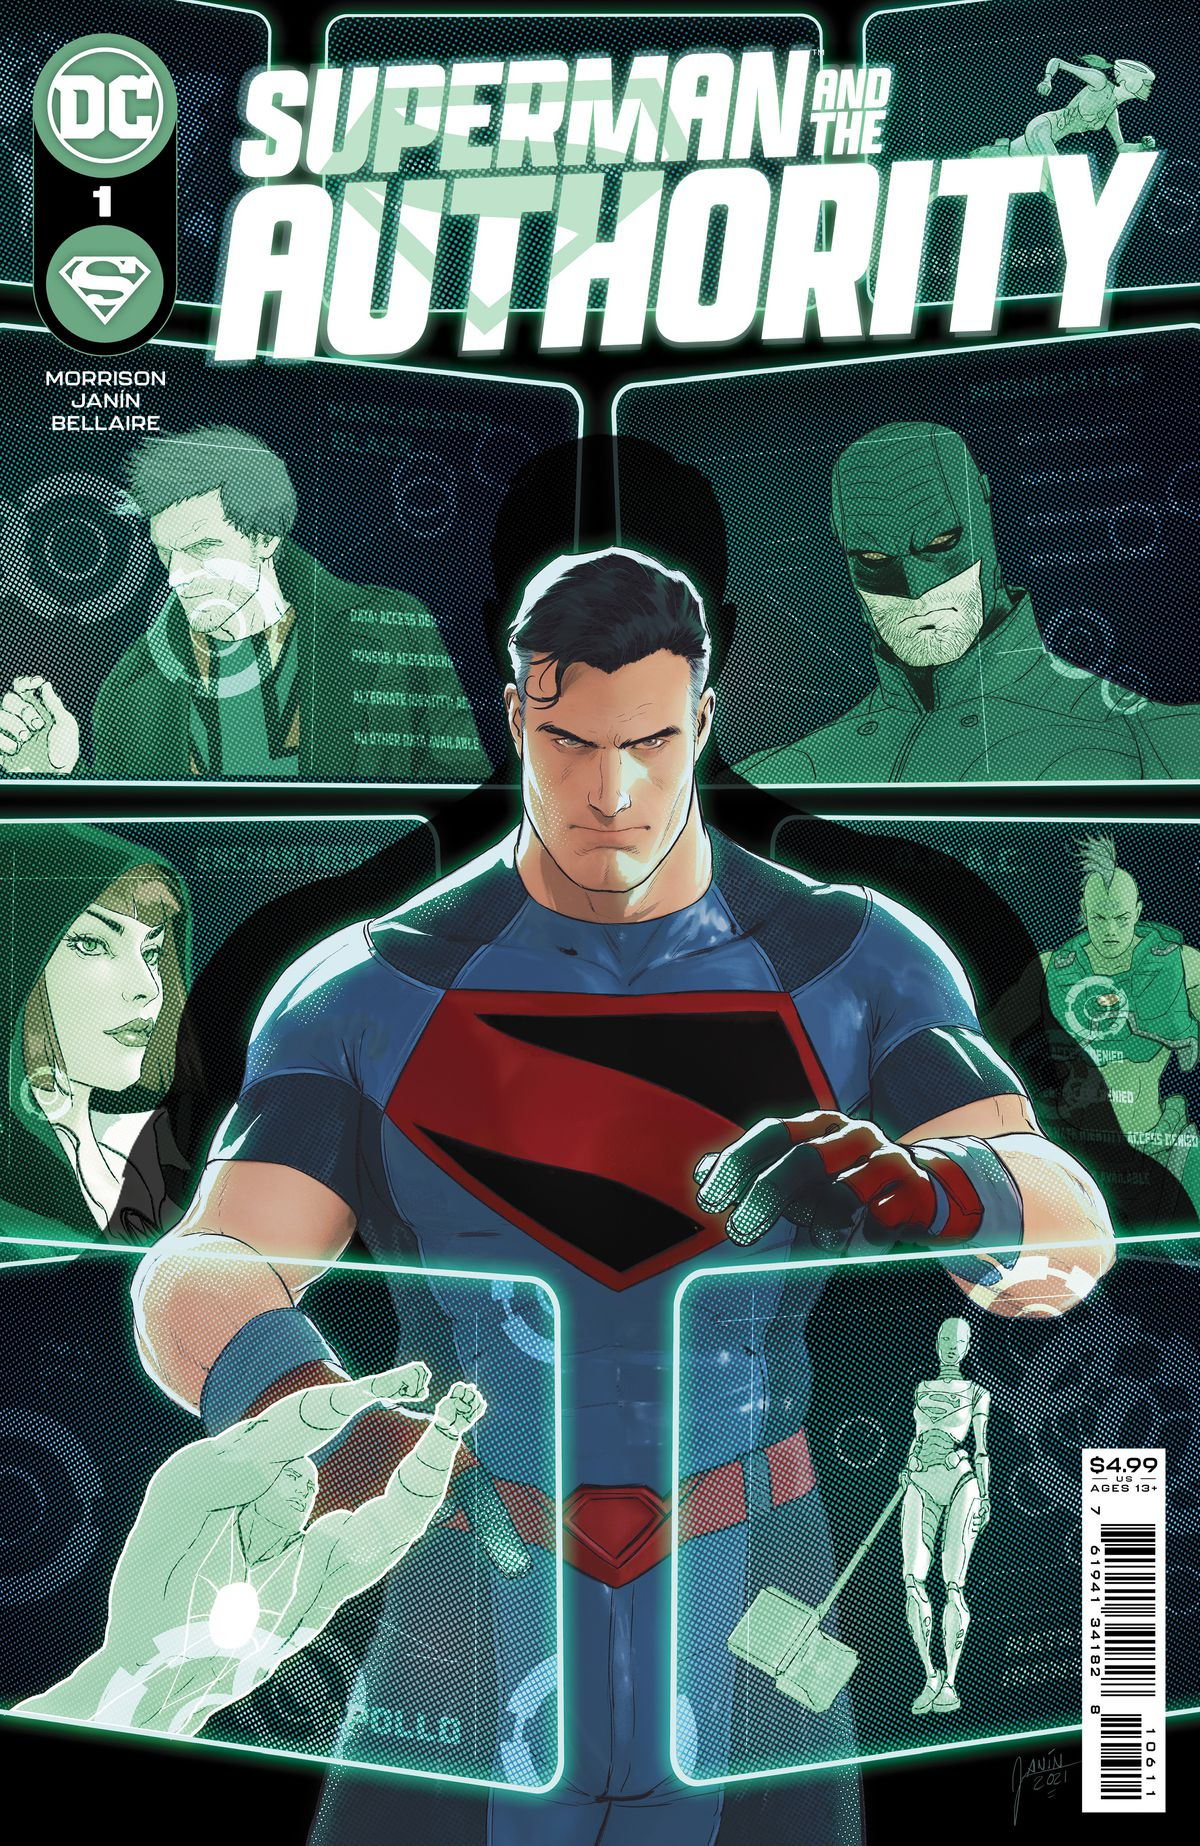 Superman inspects holographic images of various members of the Authority on the cover of Superman and the Authority #1, DC Comics (2021).